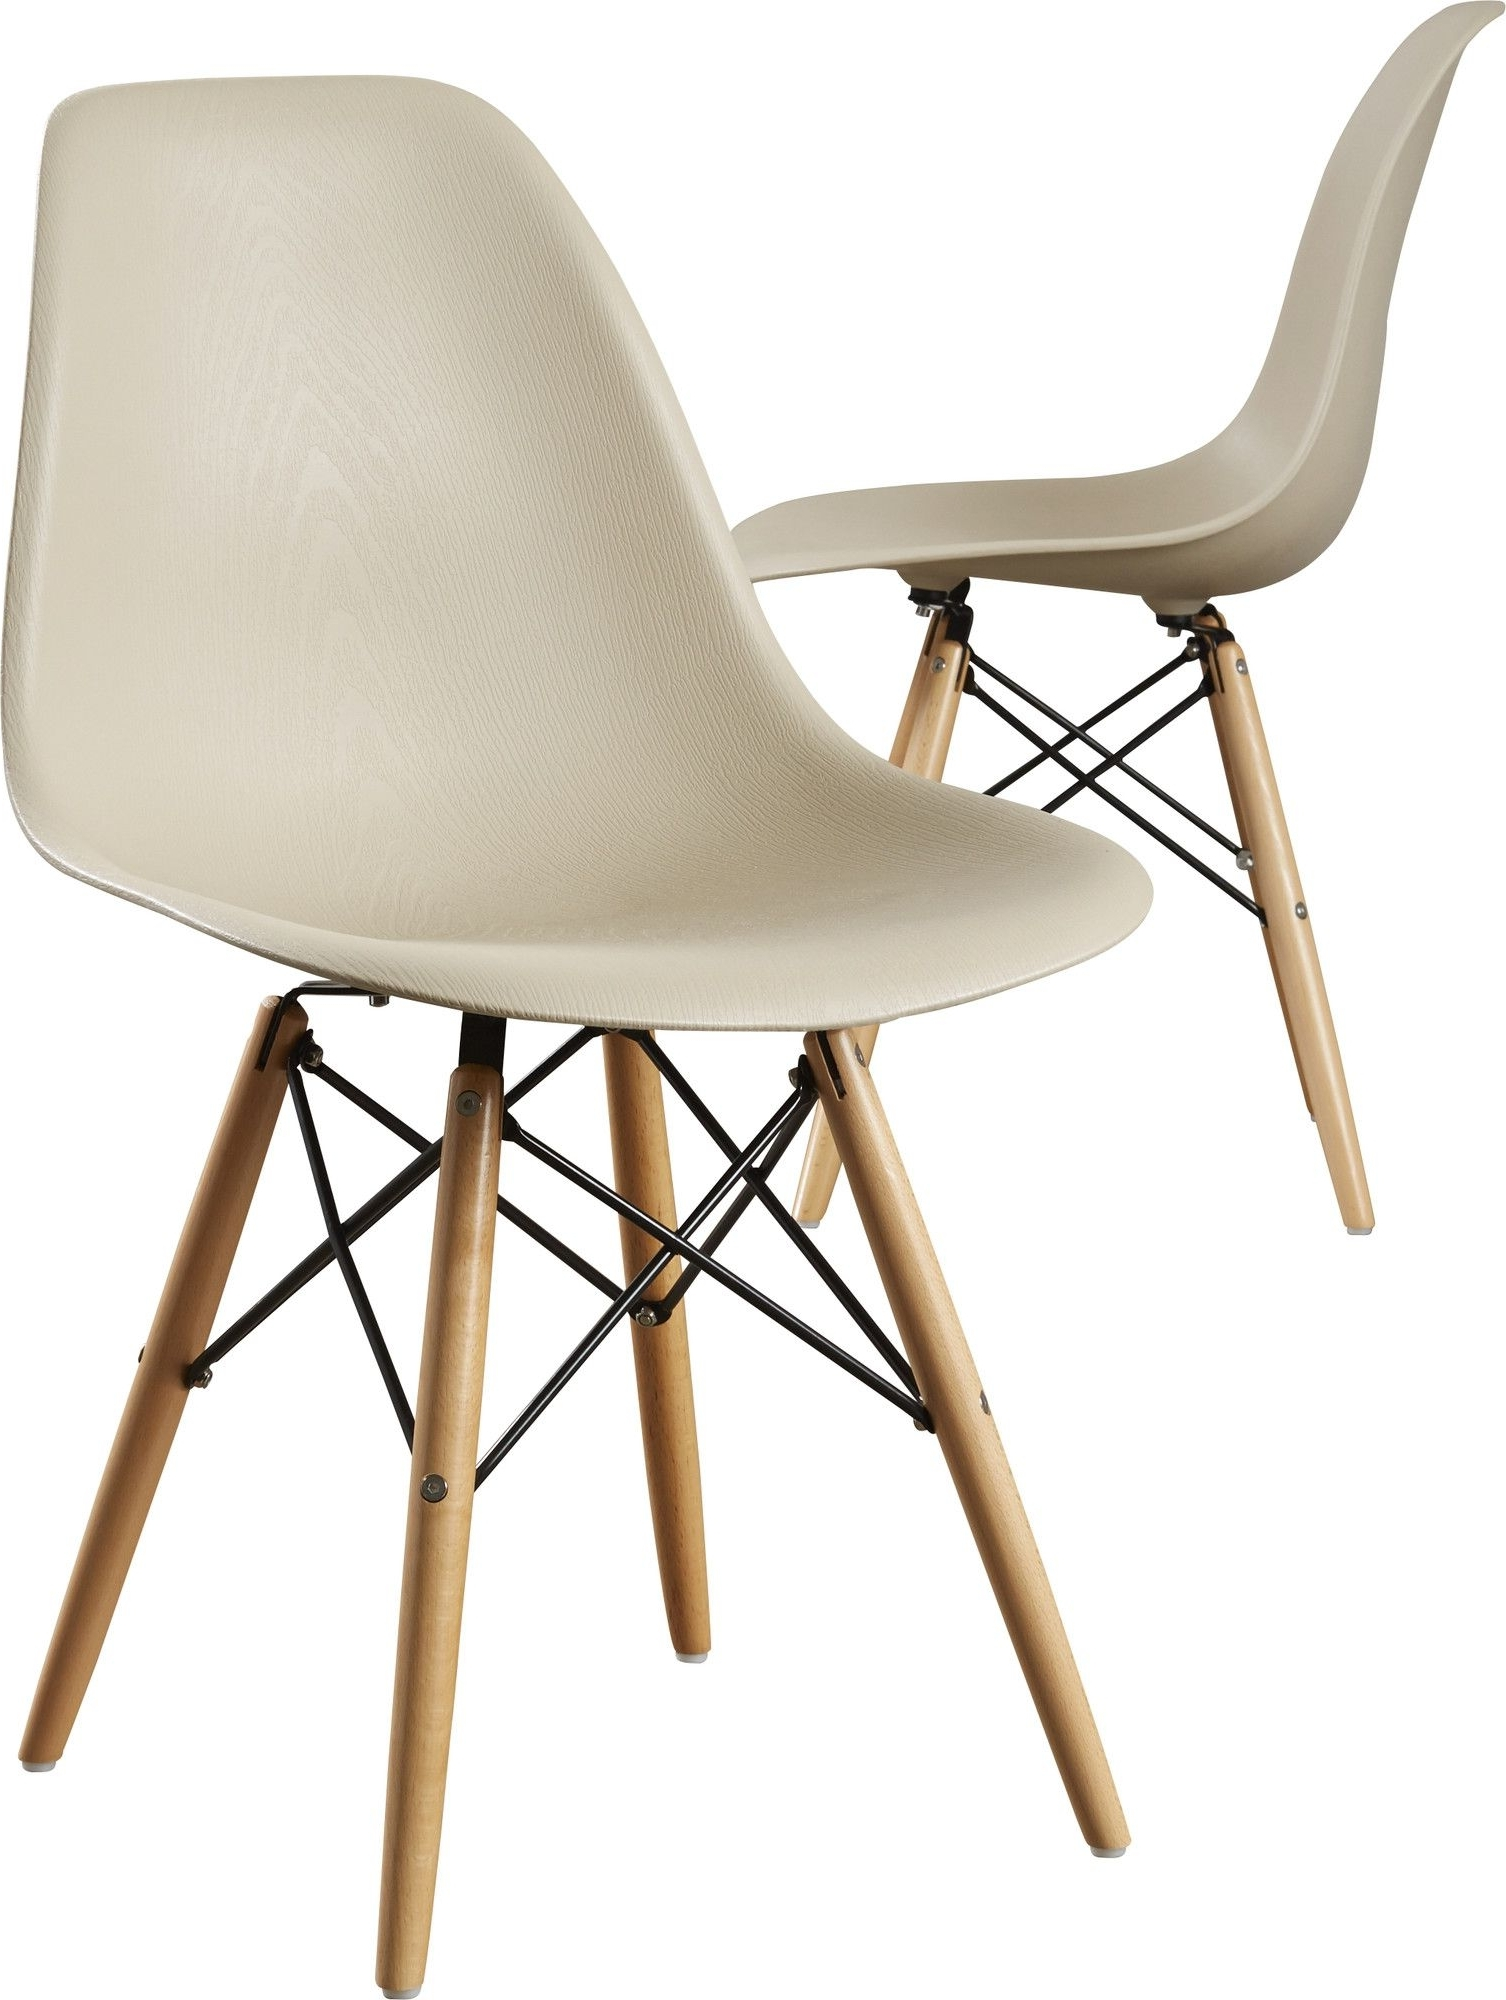 Joss Side Chairs Within Widely Used You'll Love The Lucas Side Chair At Joss & Main – With Great Deals (View 12 of 20)